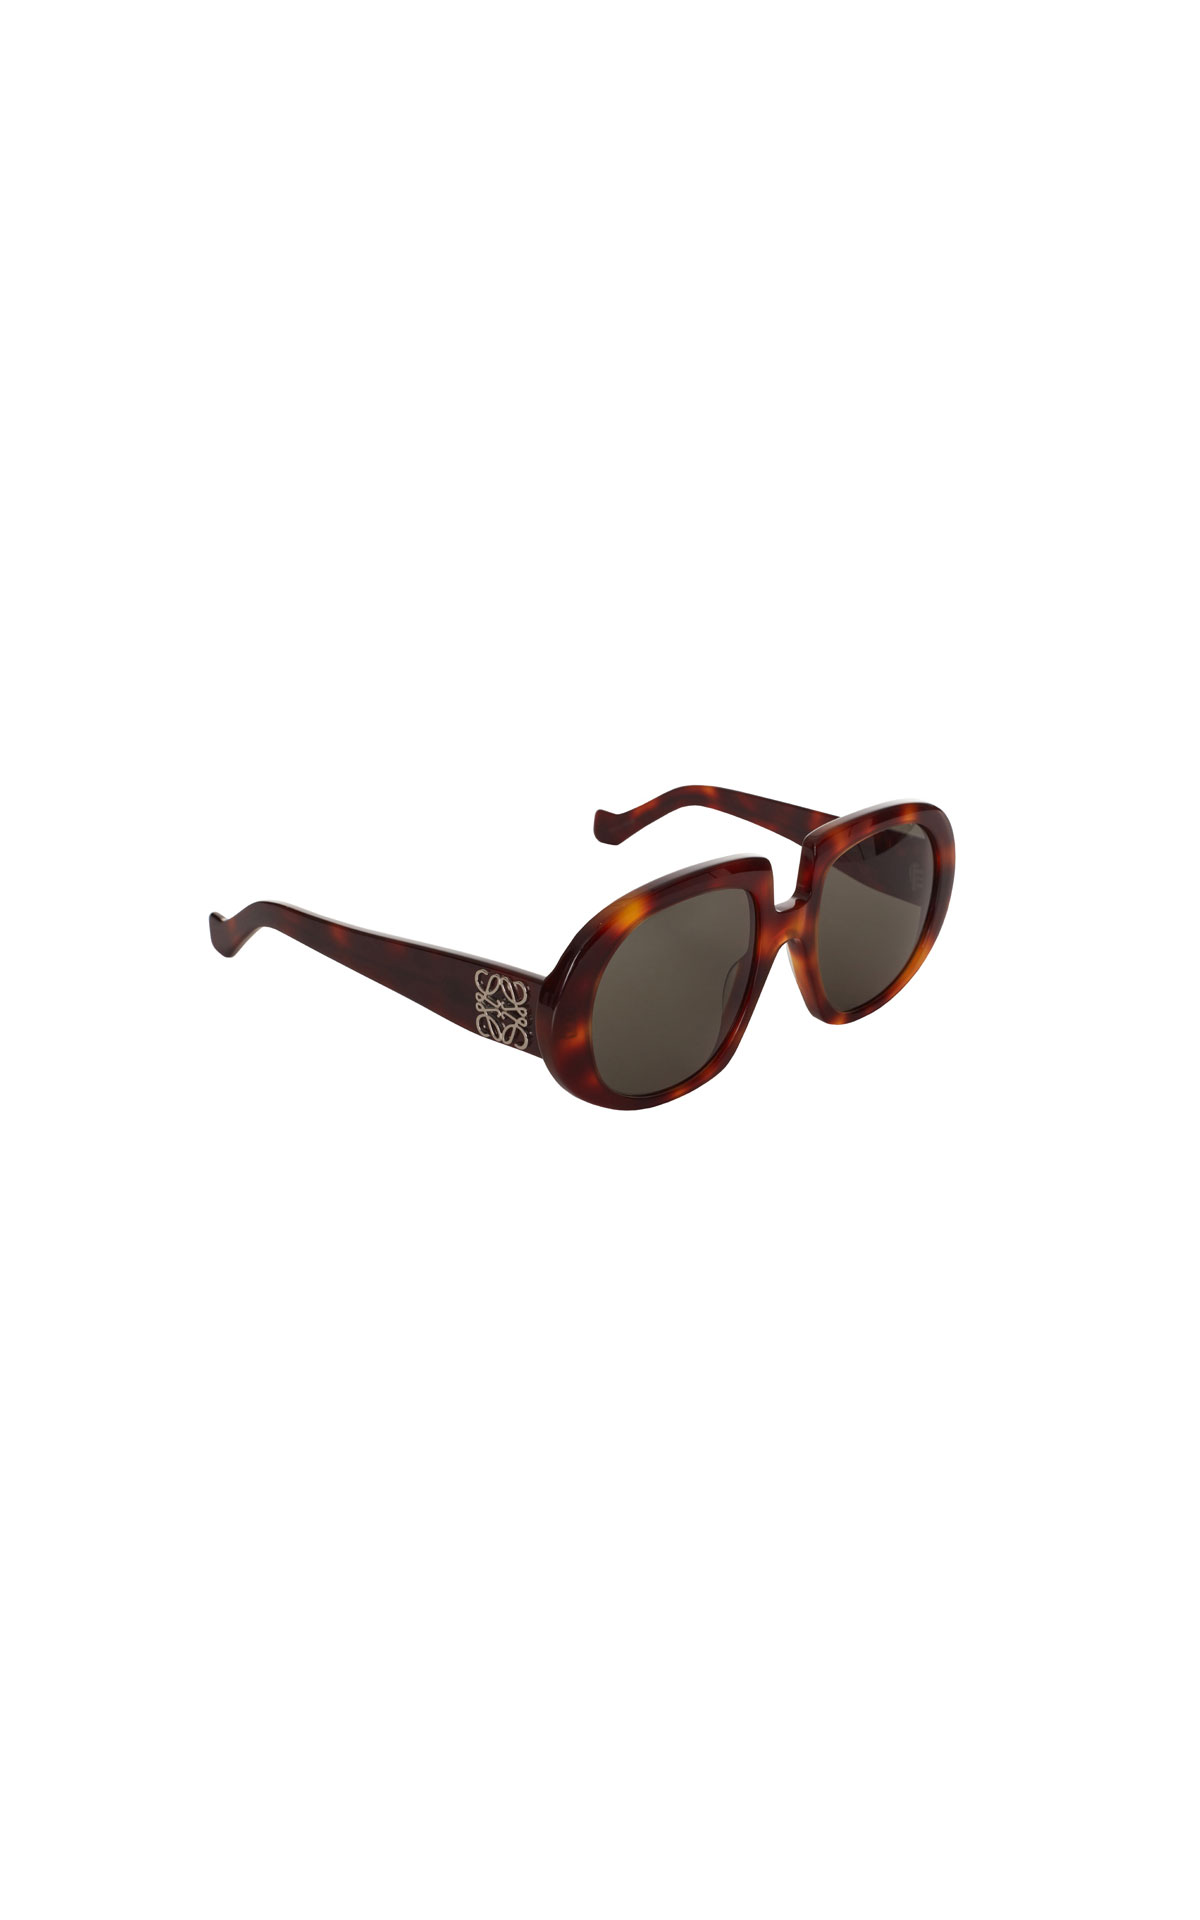 Loewe Acetate anagram sunglasses from Bicester Village